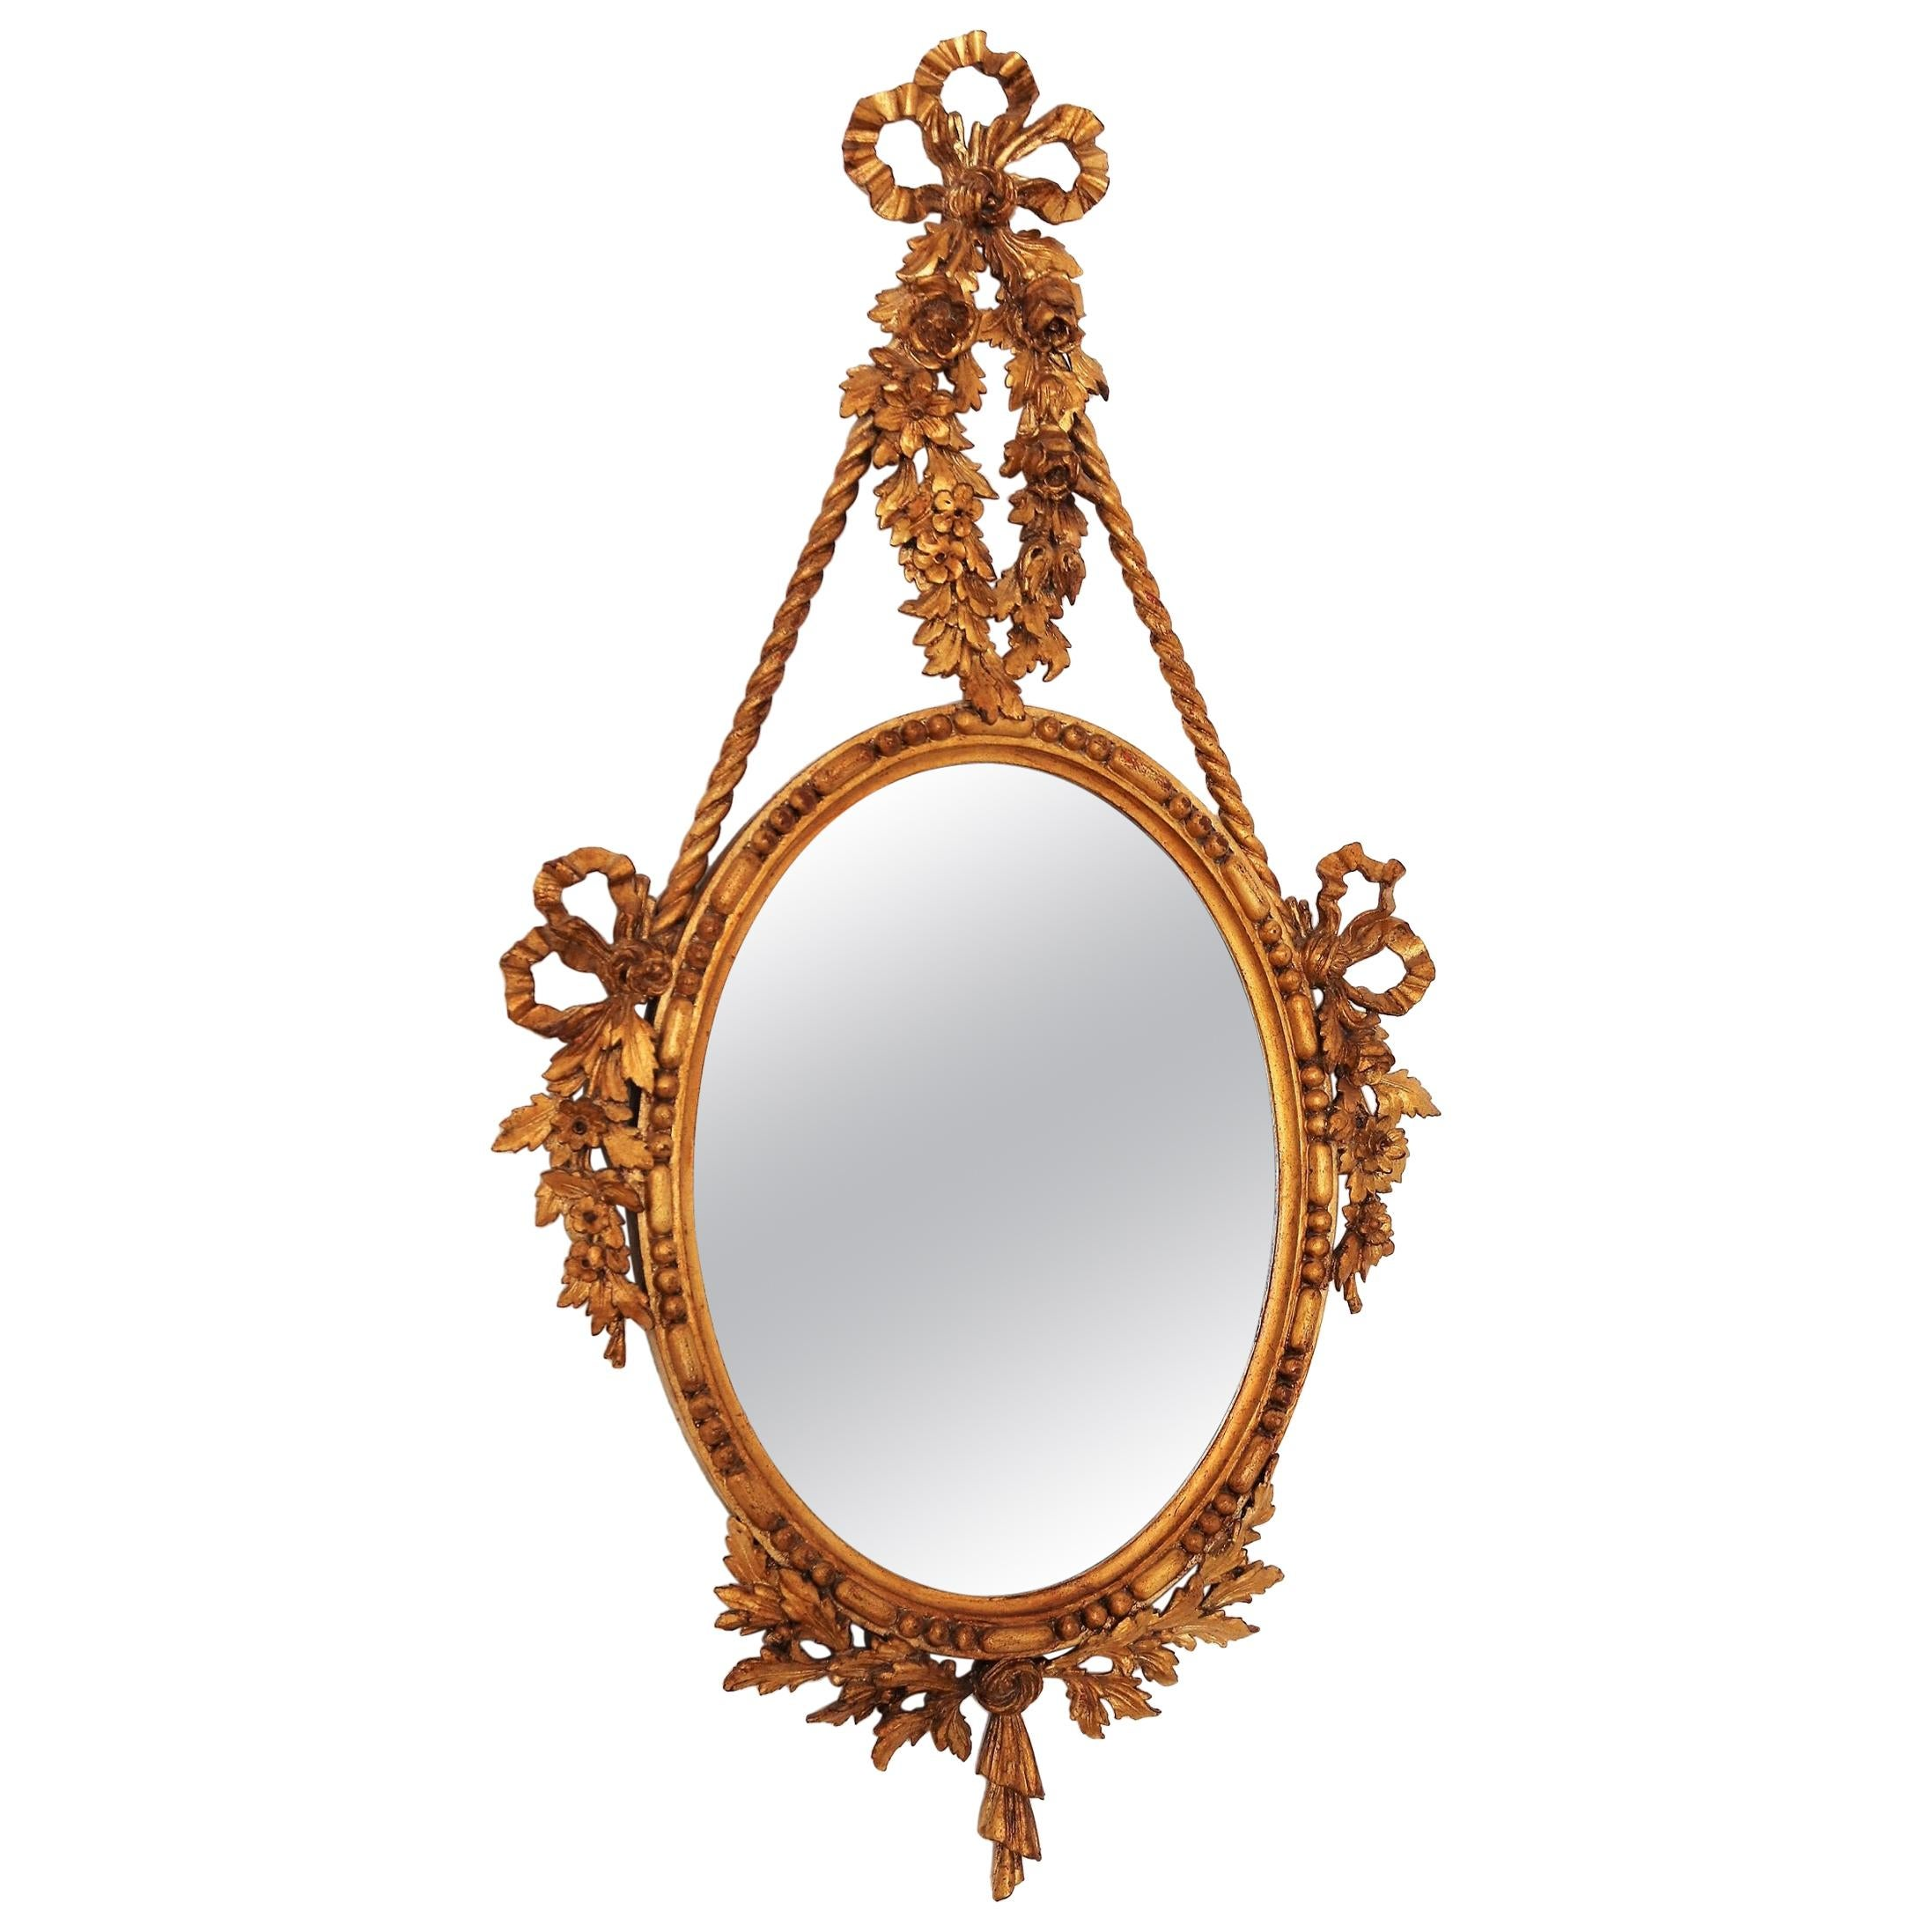 Italian Carved Wall Mirror with Gilt Wooden Frame, 1950s